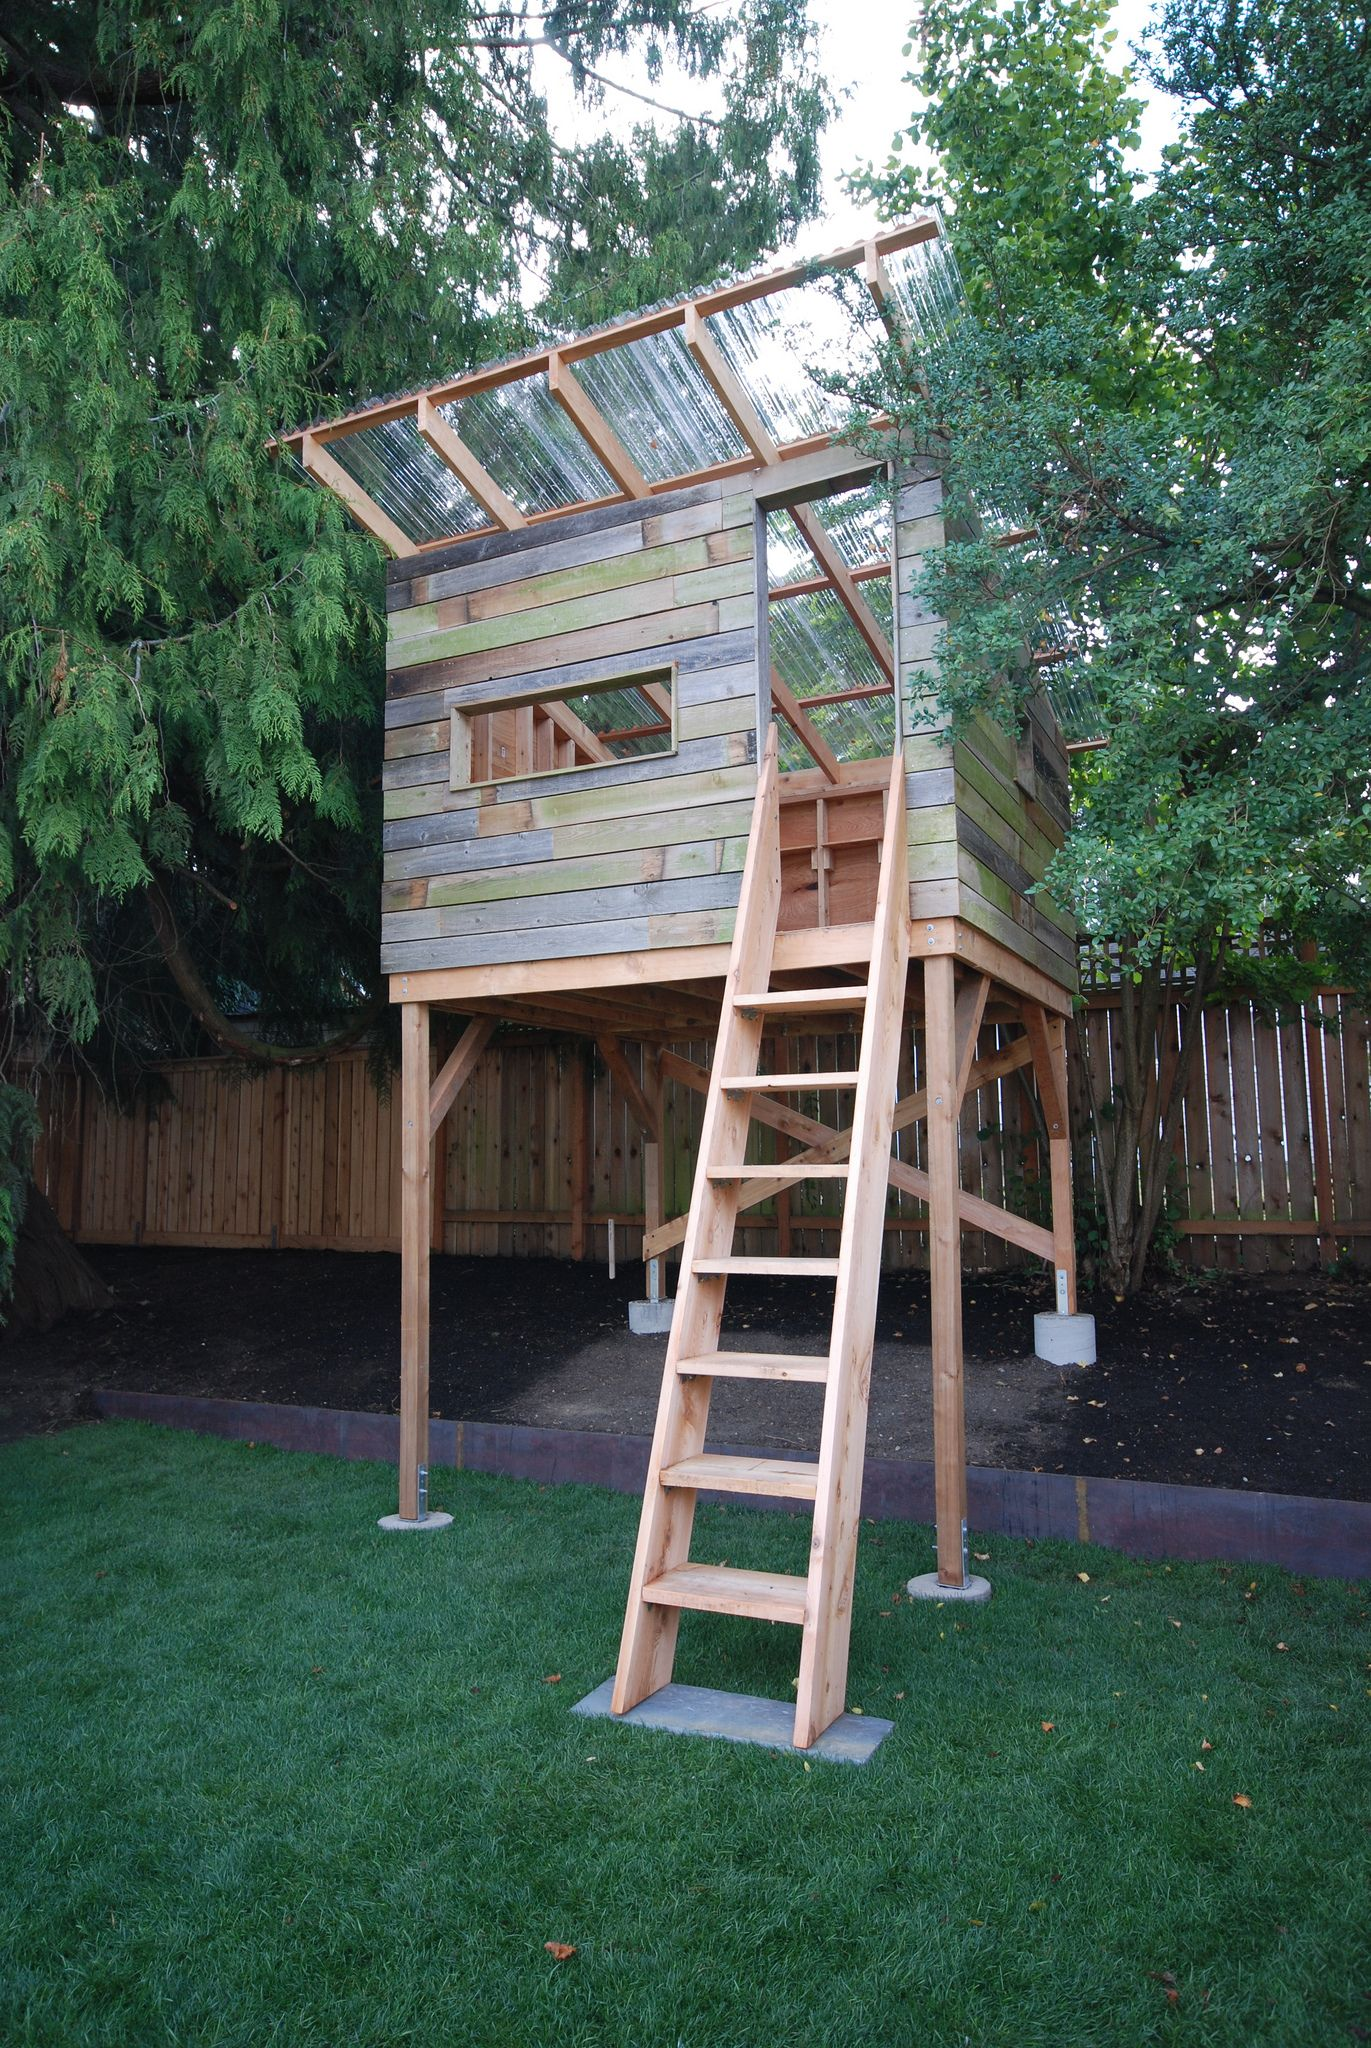 Exteriorscapes Playhouse Tree House Diy Tree House Plans Tree House